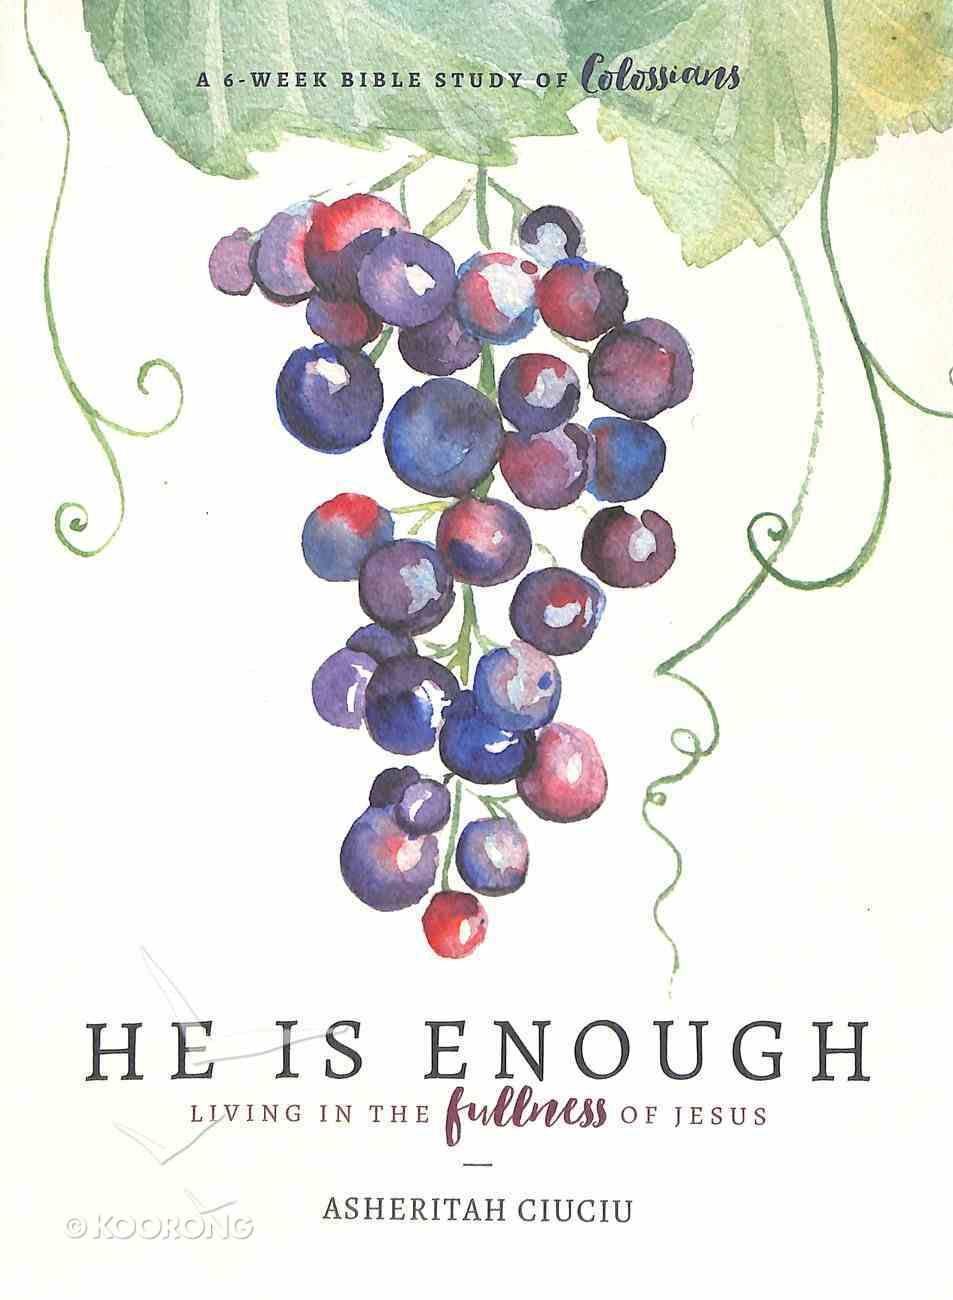 He is Enough: Living in the Fullness of Jesus (A 6 Week Study In Colossians) Paperback